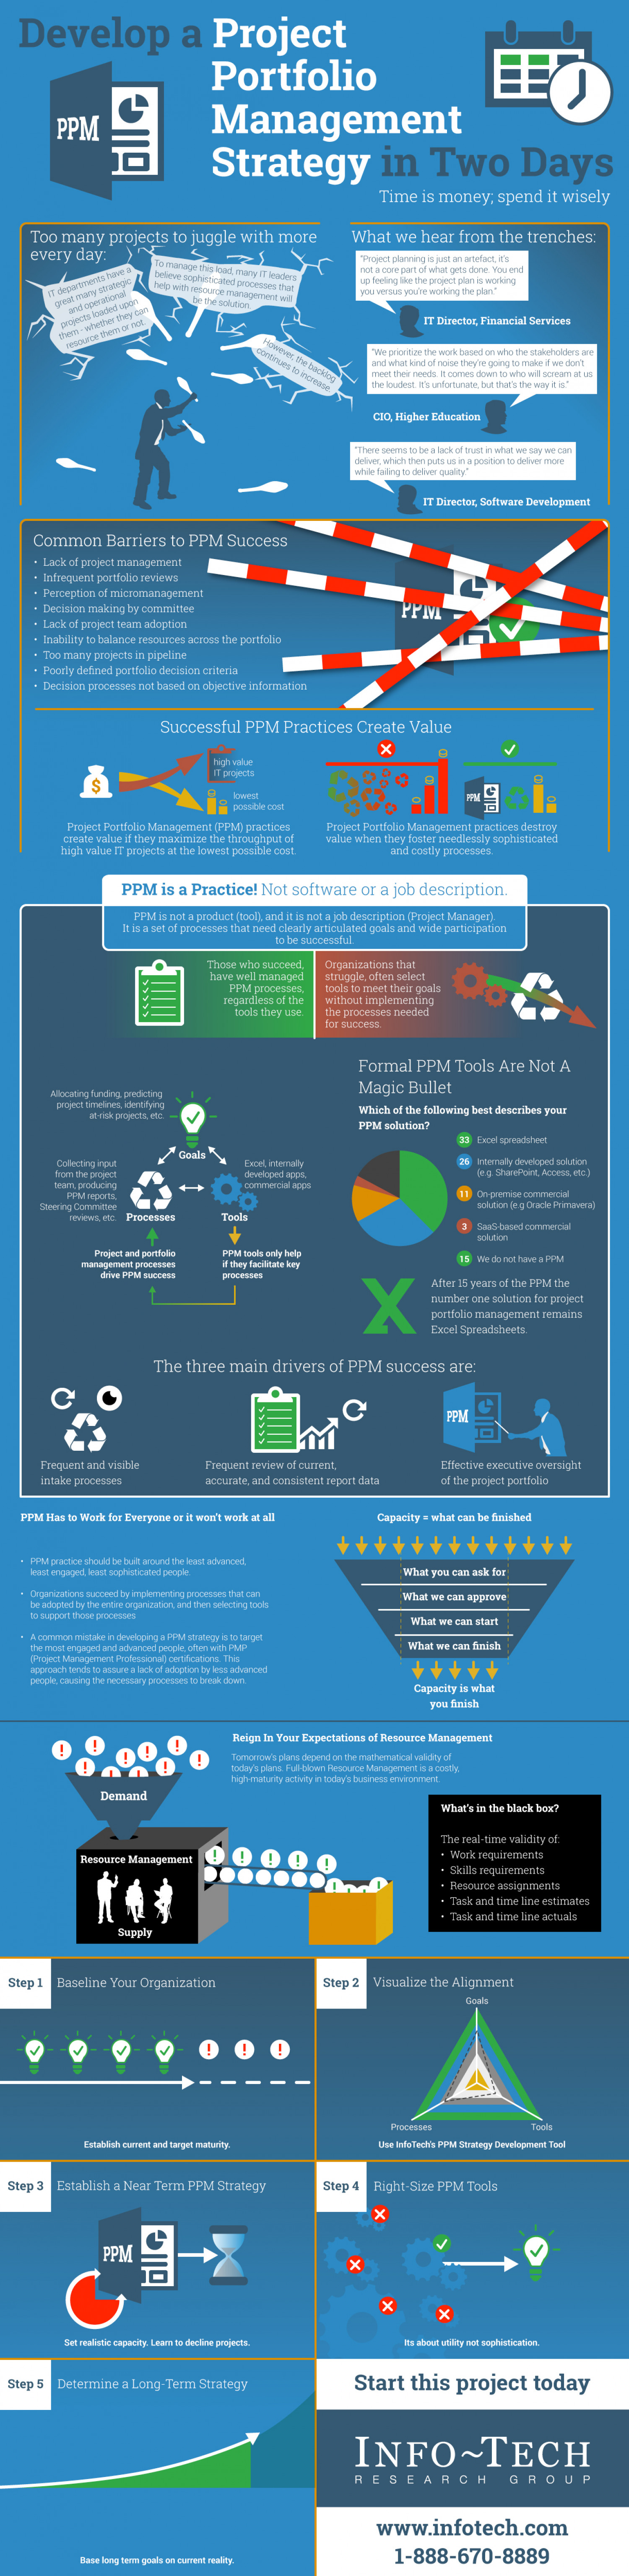 Develop a Project Portfolio Management Strategy in Two Days Infographic